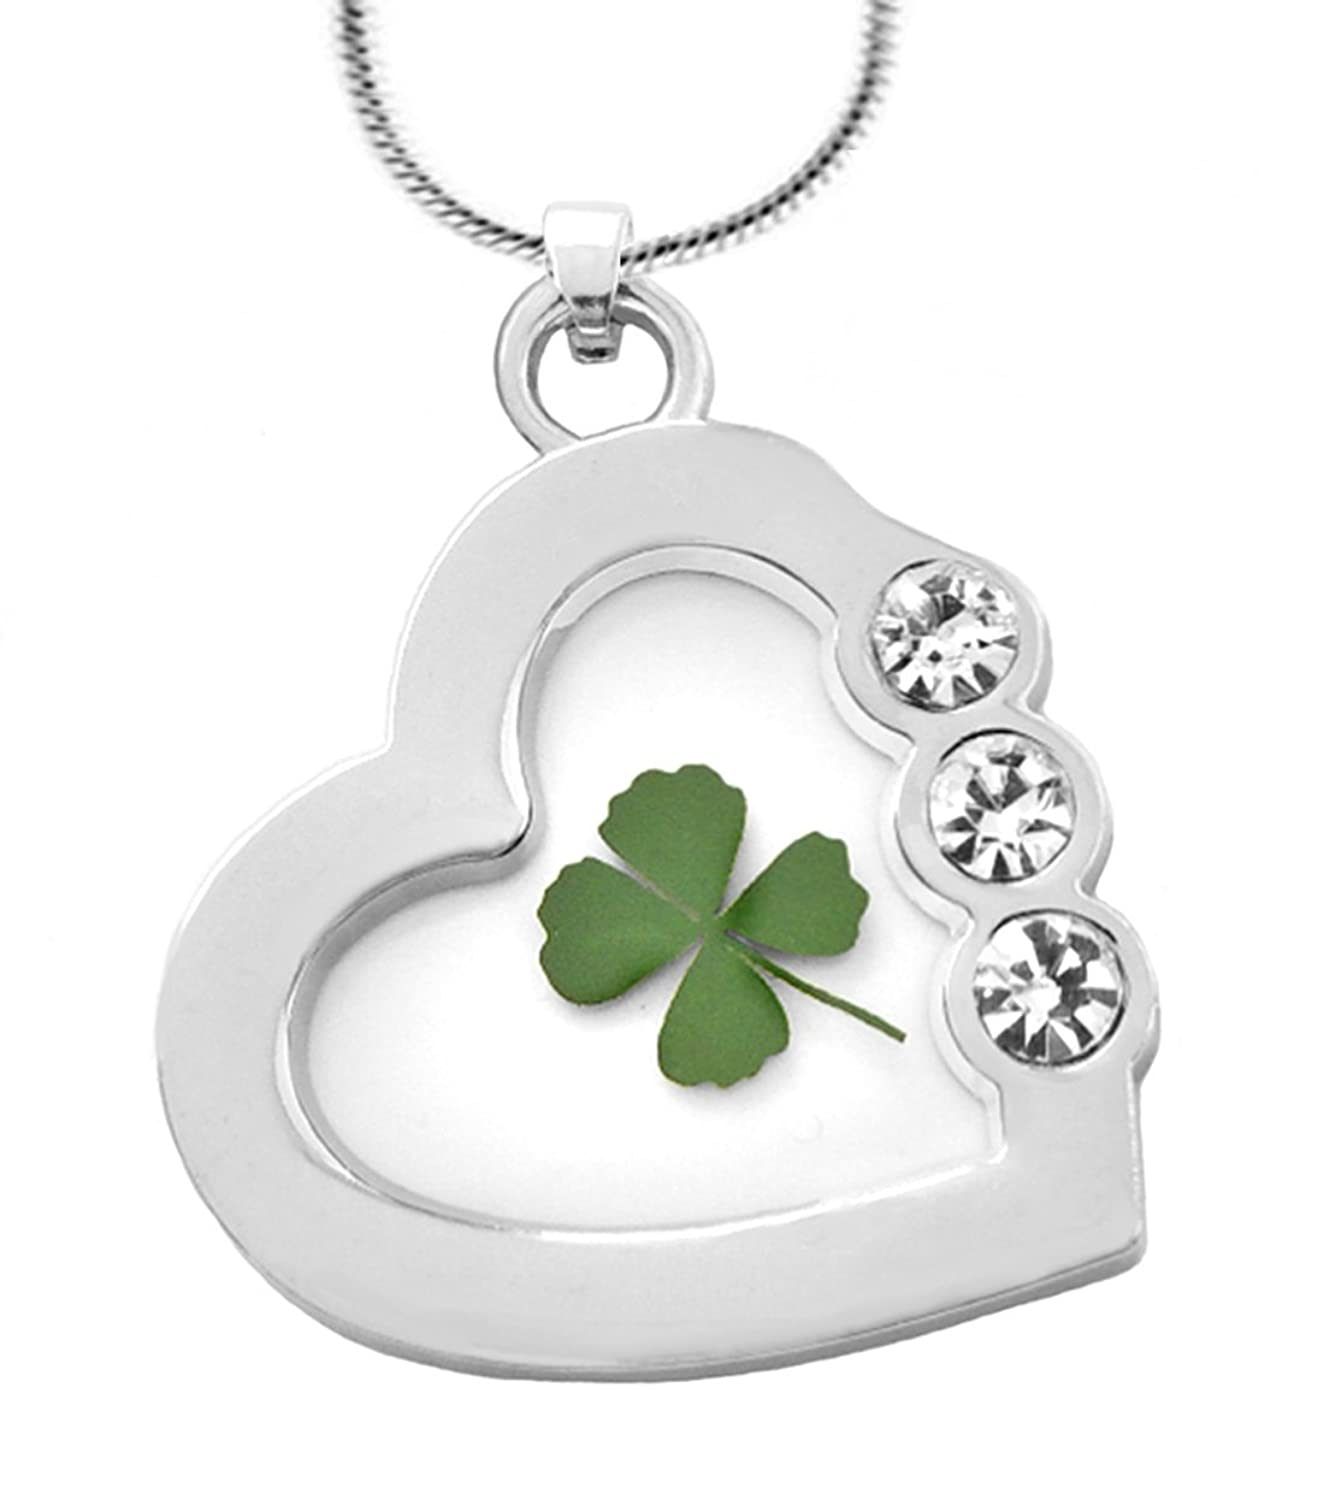 amazon com real 4 leaf clover dried shamrock pendant lucky charm